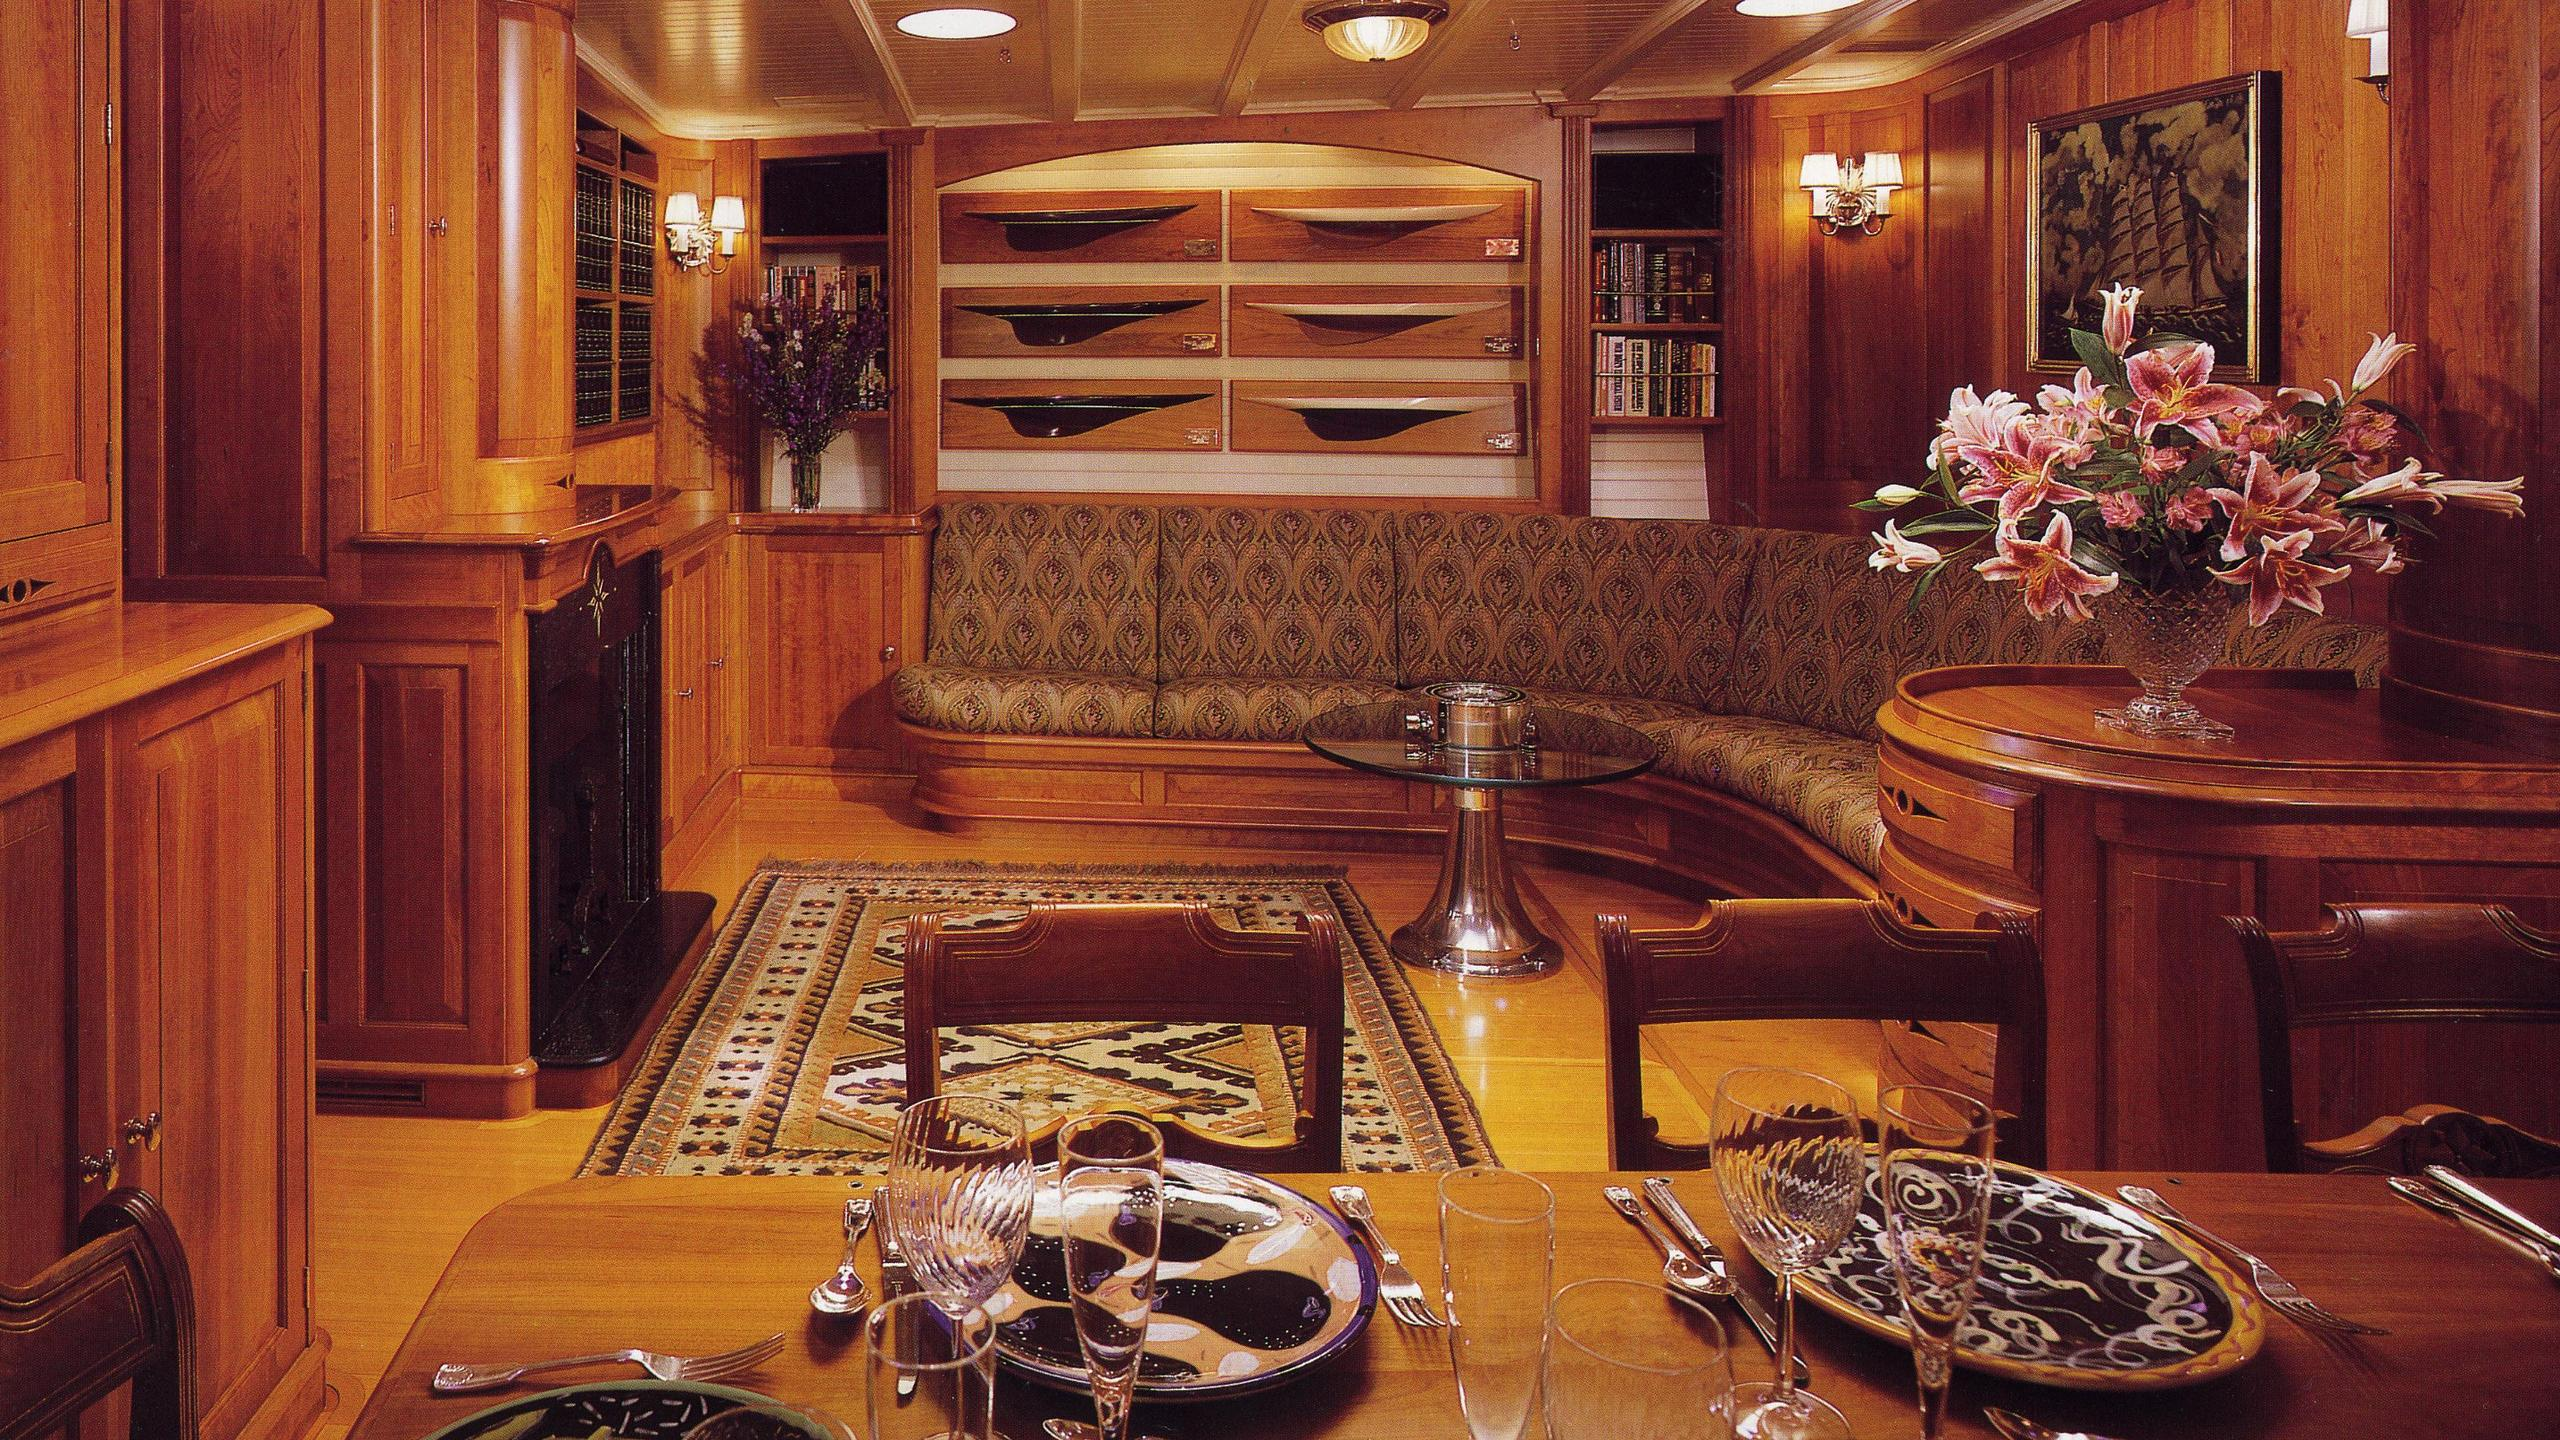 endeavour-classic-saling-yacht-camper-nicholsons-1934-40m-dining-room